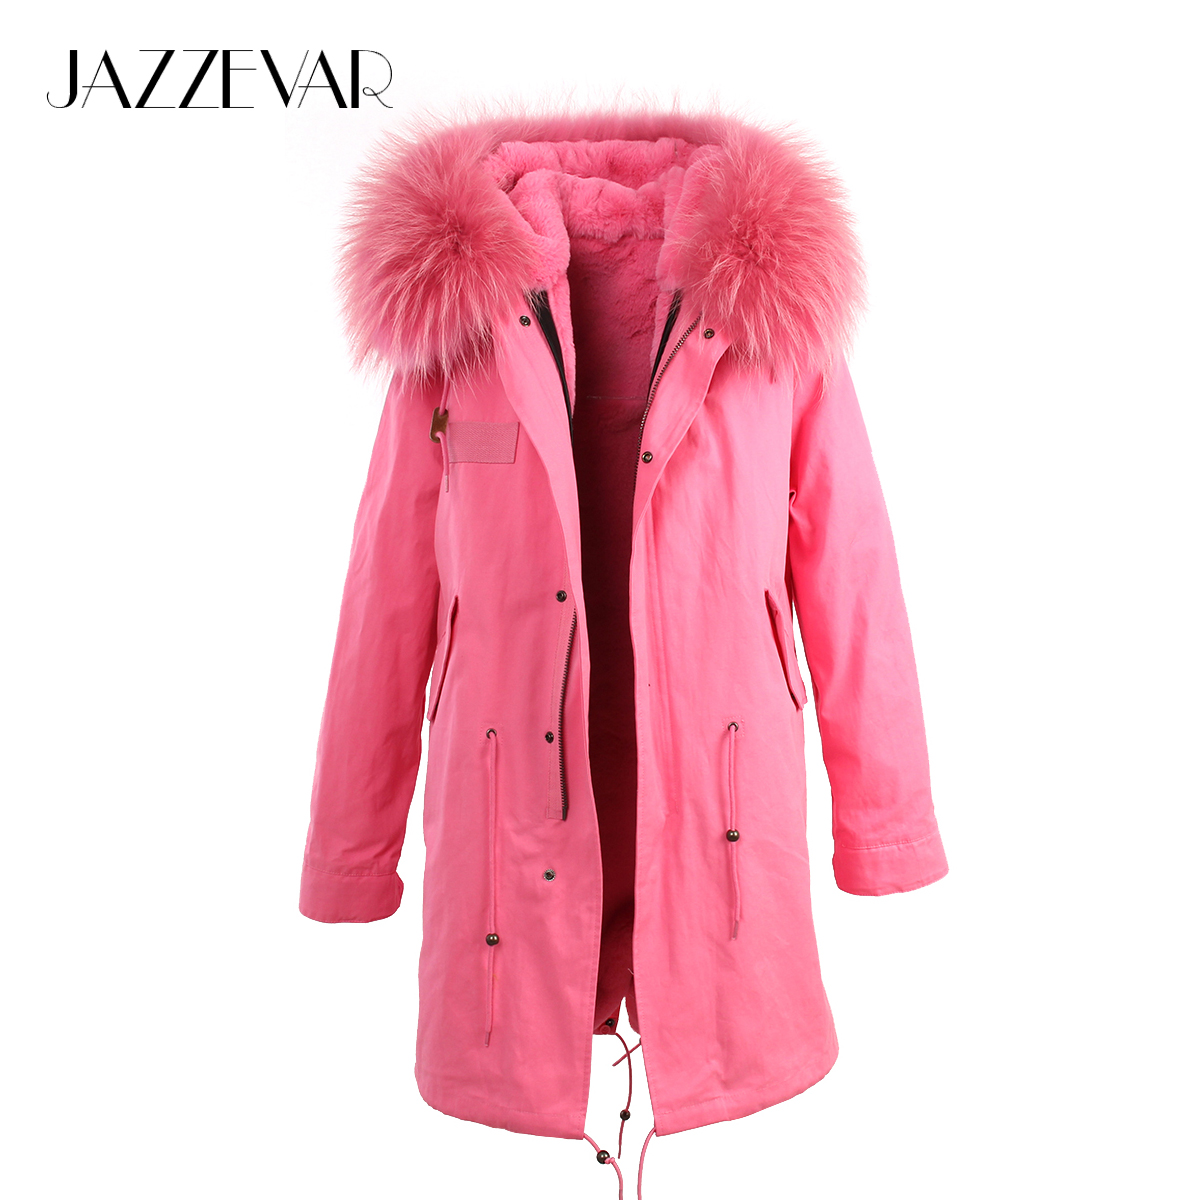 JAZZEVAR 2019 coat women pink faux fur lined parkas with large raccoon fur collar hooded Military winter jackets good quality